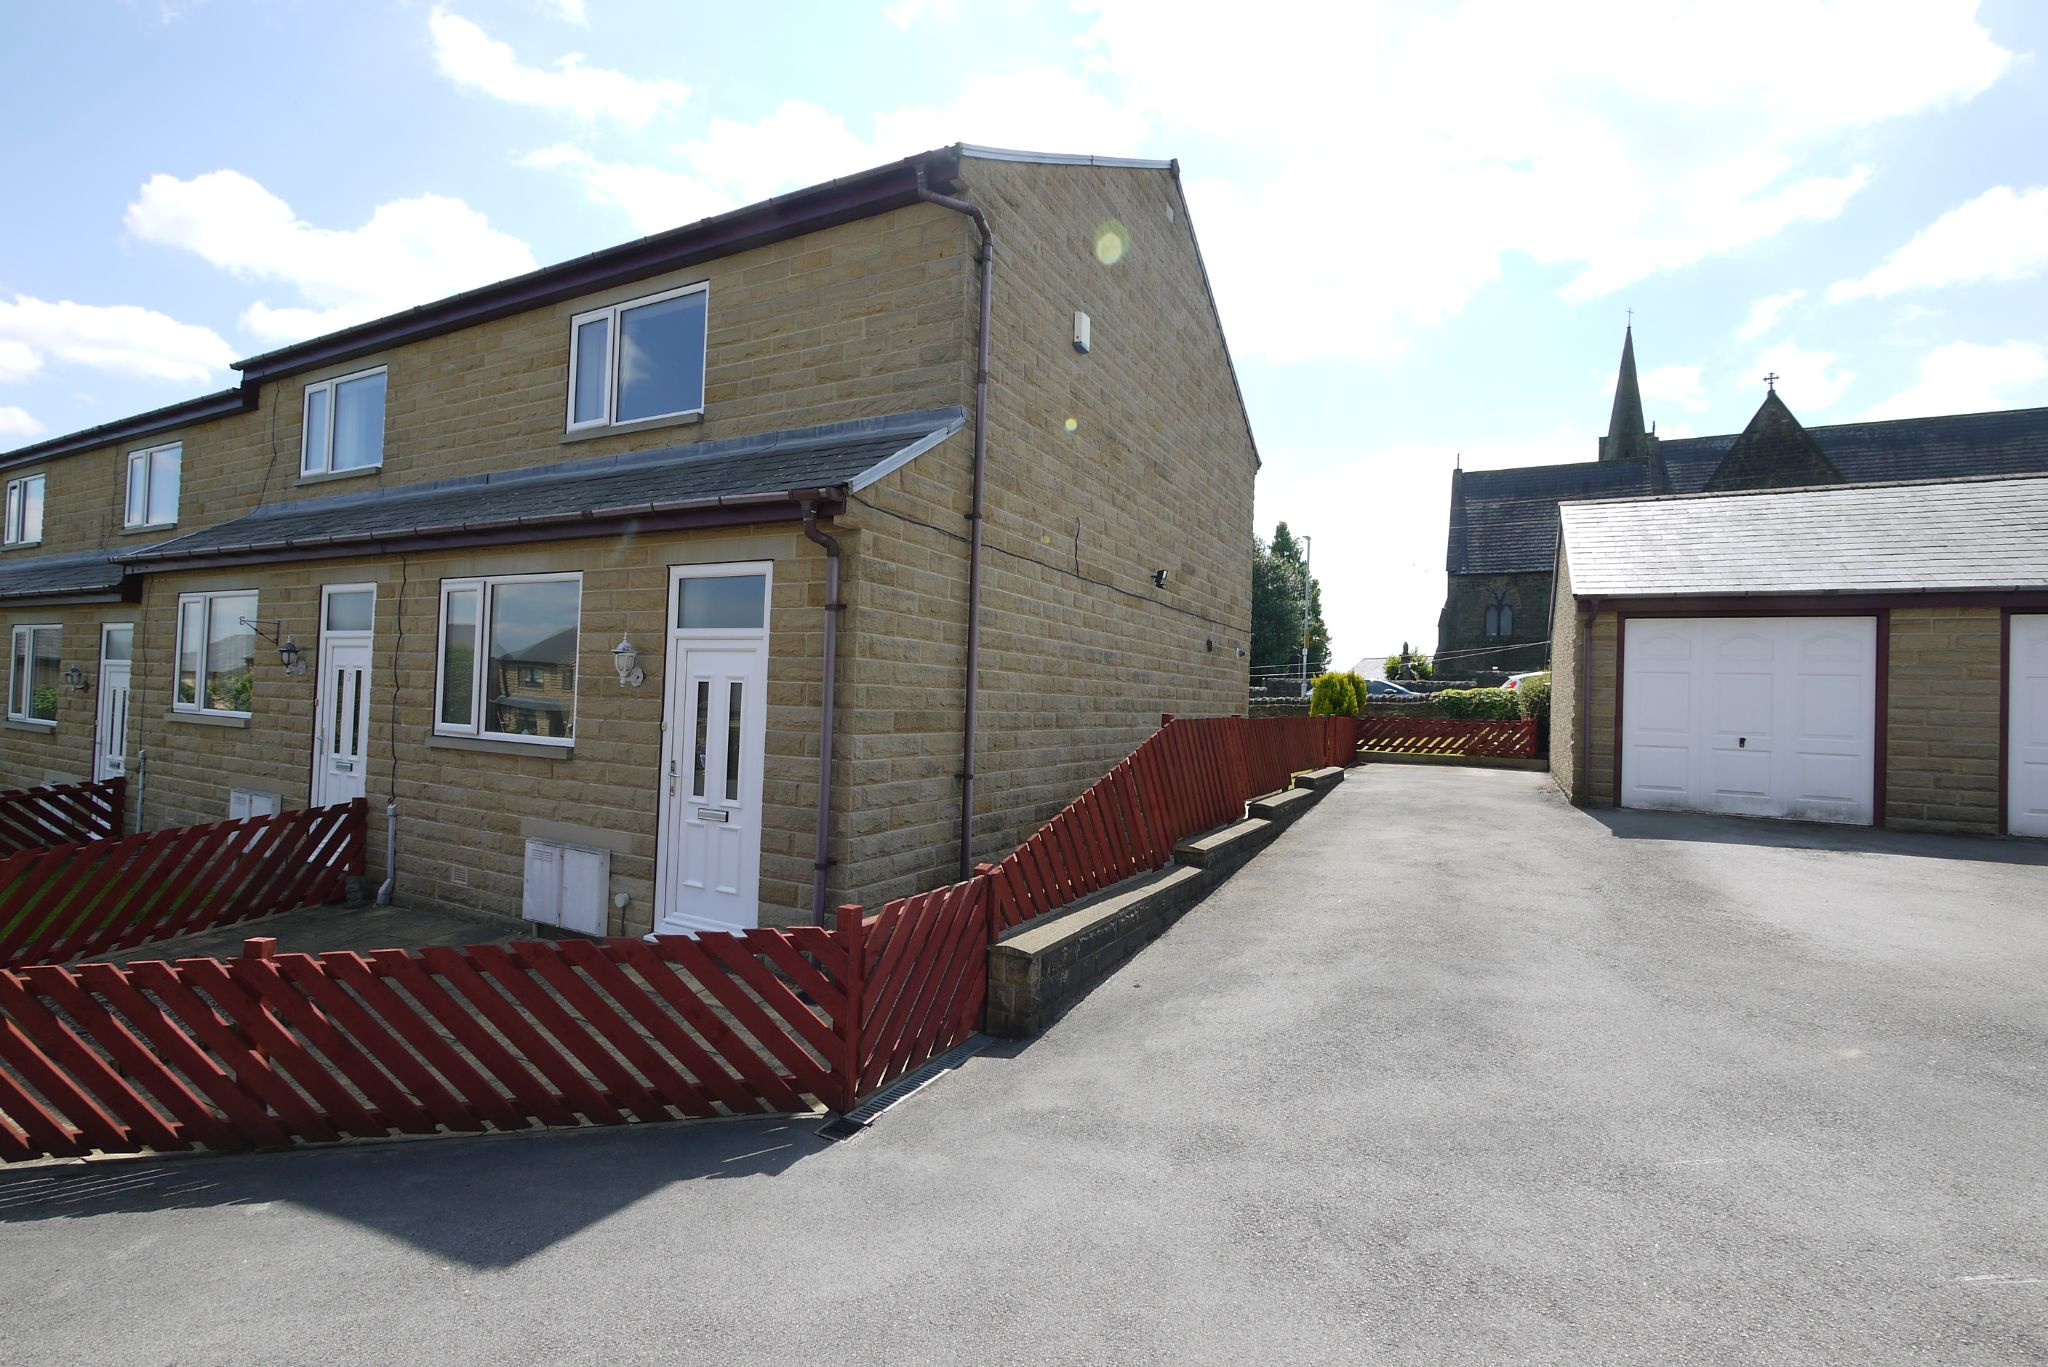 2 bedroom end terraced house SSTC in Brighouse - Front.